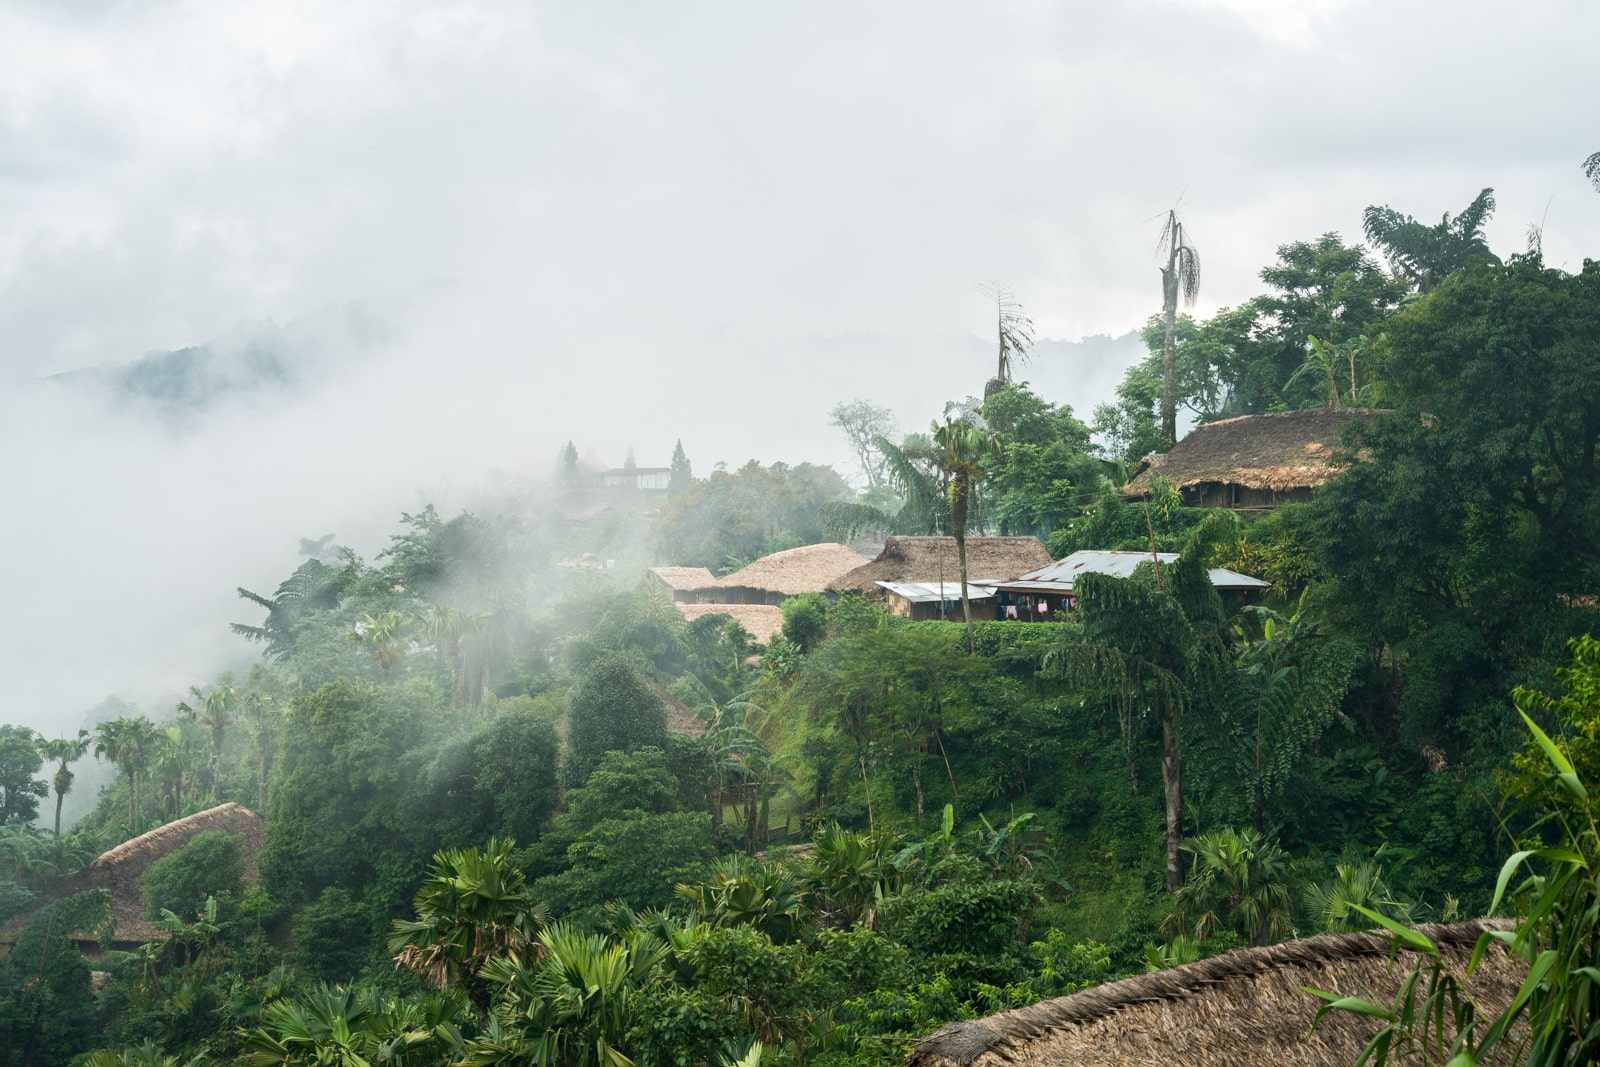 Opium and Jesus and headhunting in Longwa Village, Nagaland, India - Longwa lost in the clouds - Lost With Purpose